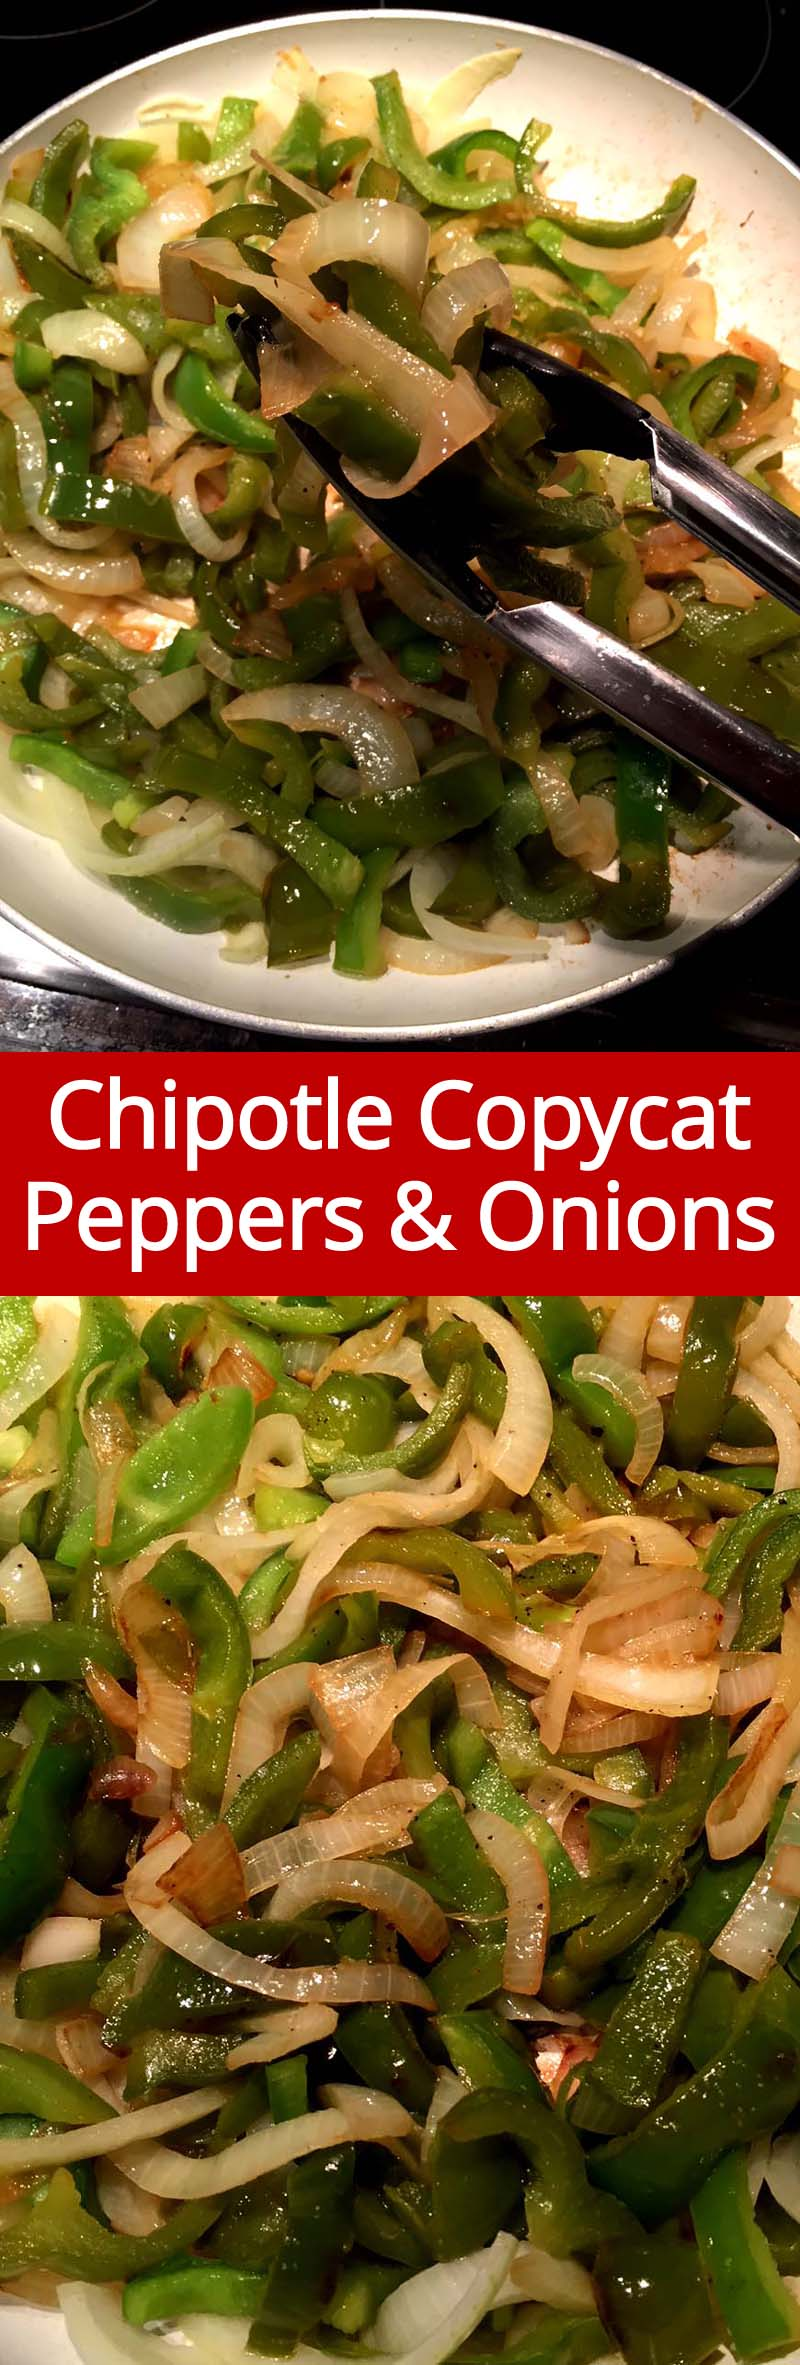 Love Chipotle's grilled peppers and onions fajitas?  Now you can make a huge batch of them at home for a fraction of a price! This Chipotle copycat peppers and onions recipe is so easy and yummy!